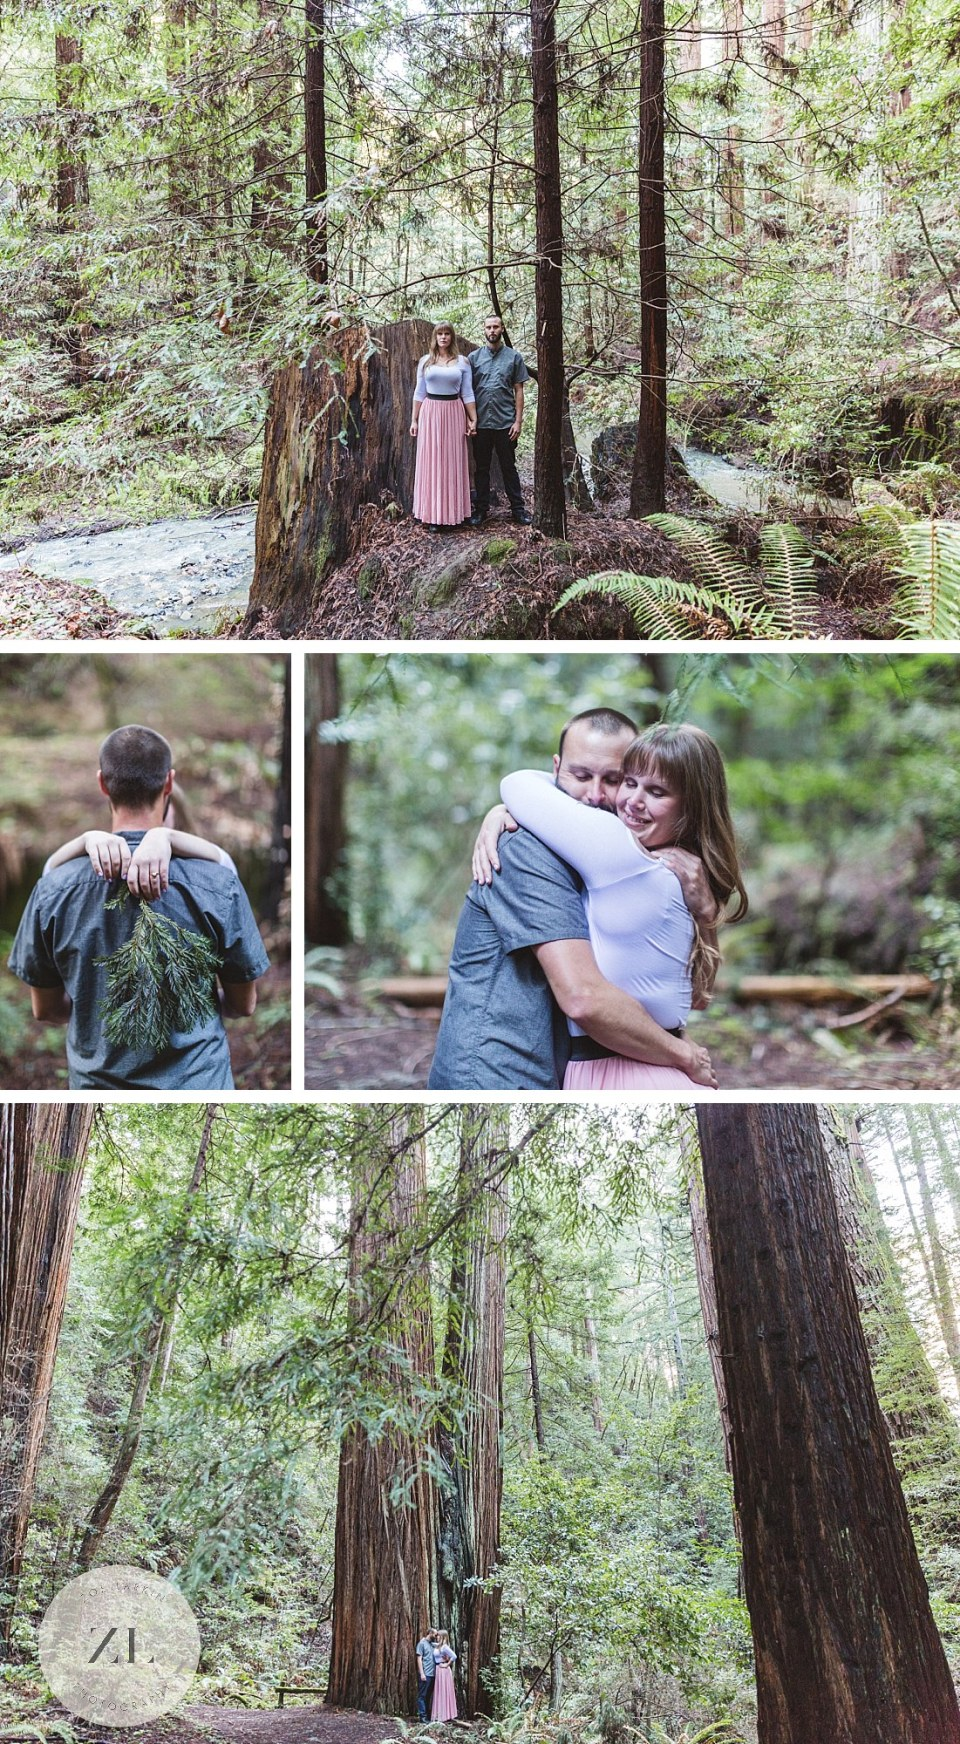 redwood forest engagement photography shoot near San Gregorio